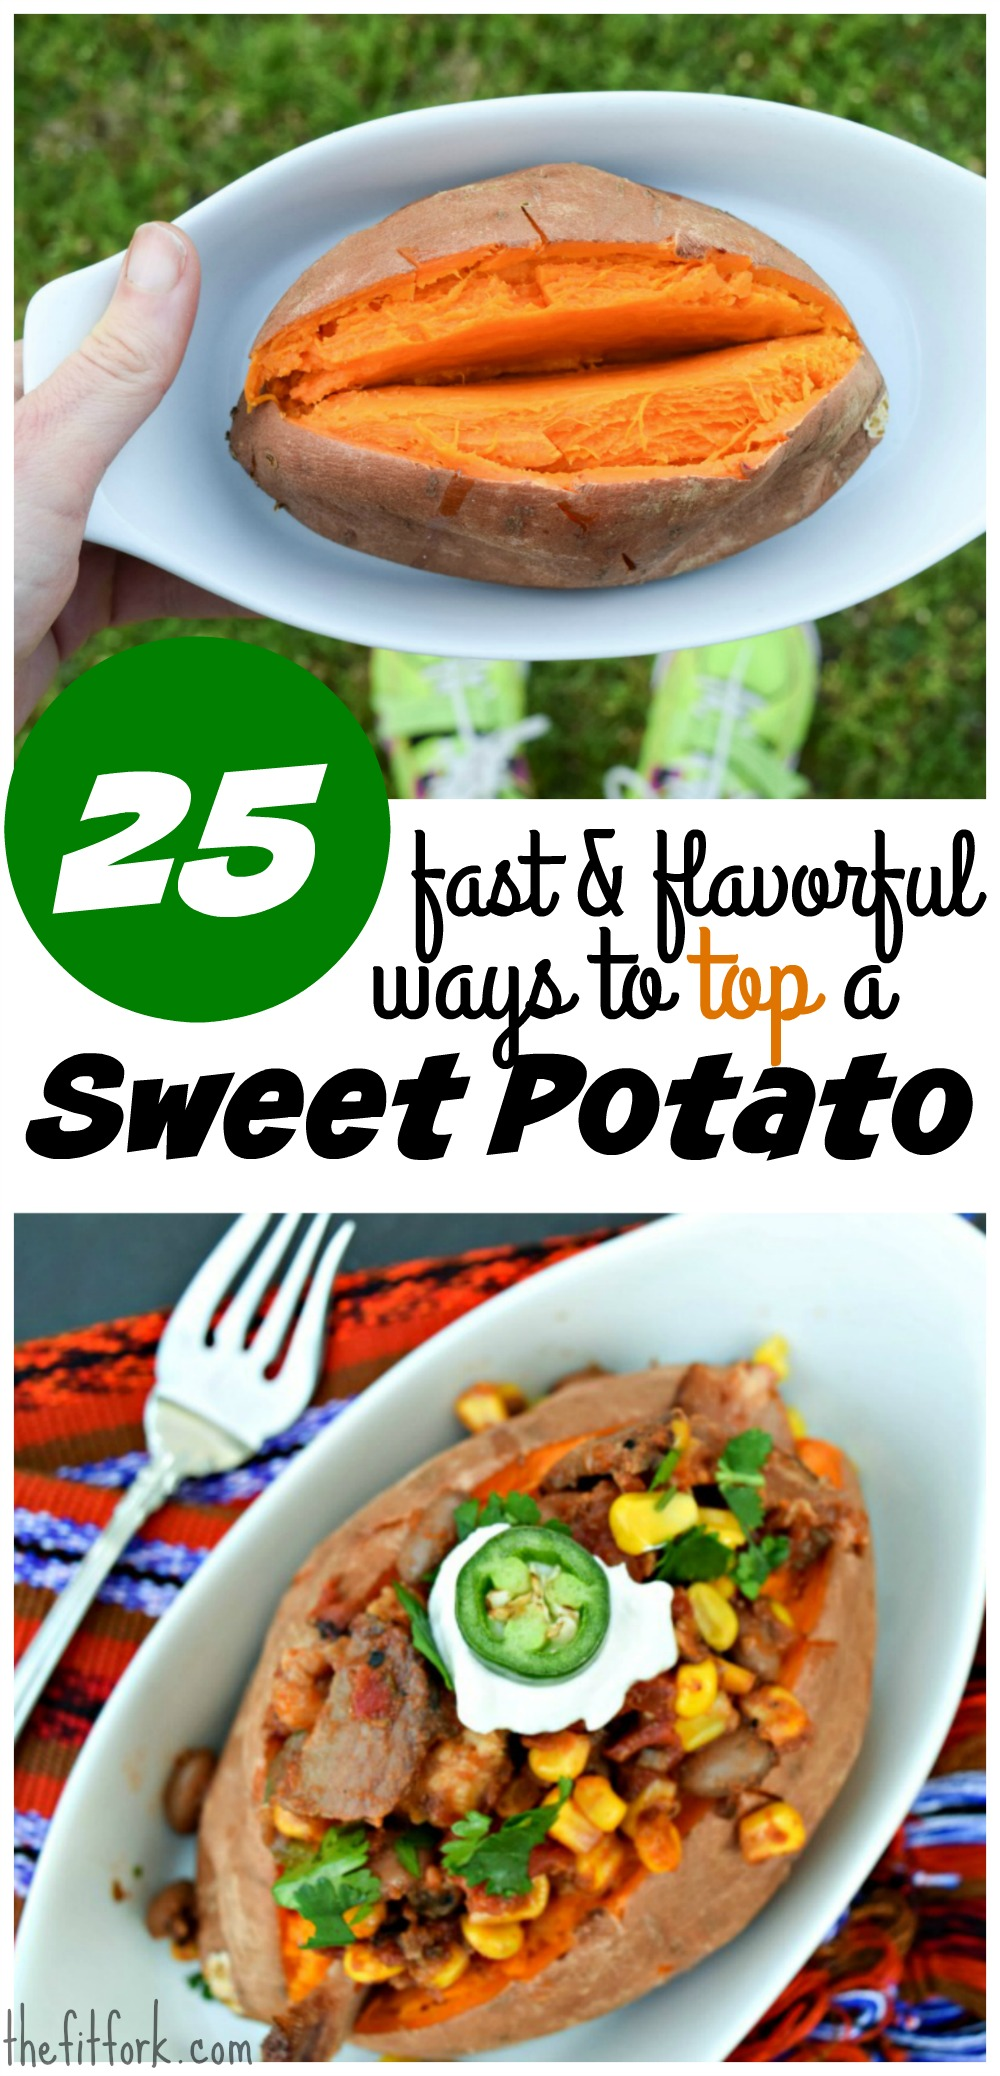 How to Roast, Grill, Microwave & Slow Cook a Sweet Potato ...